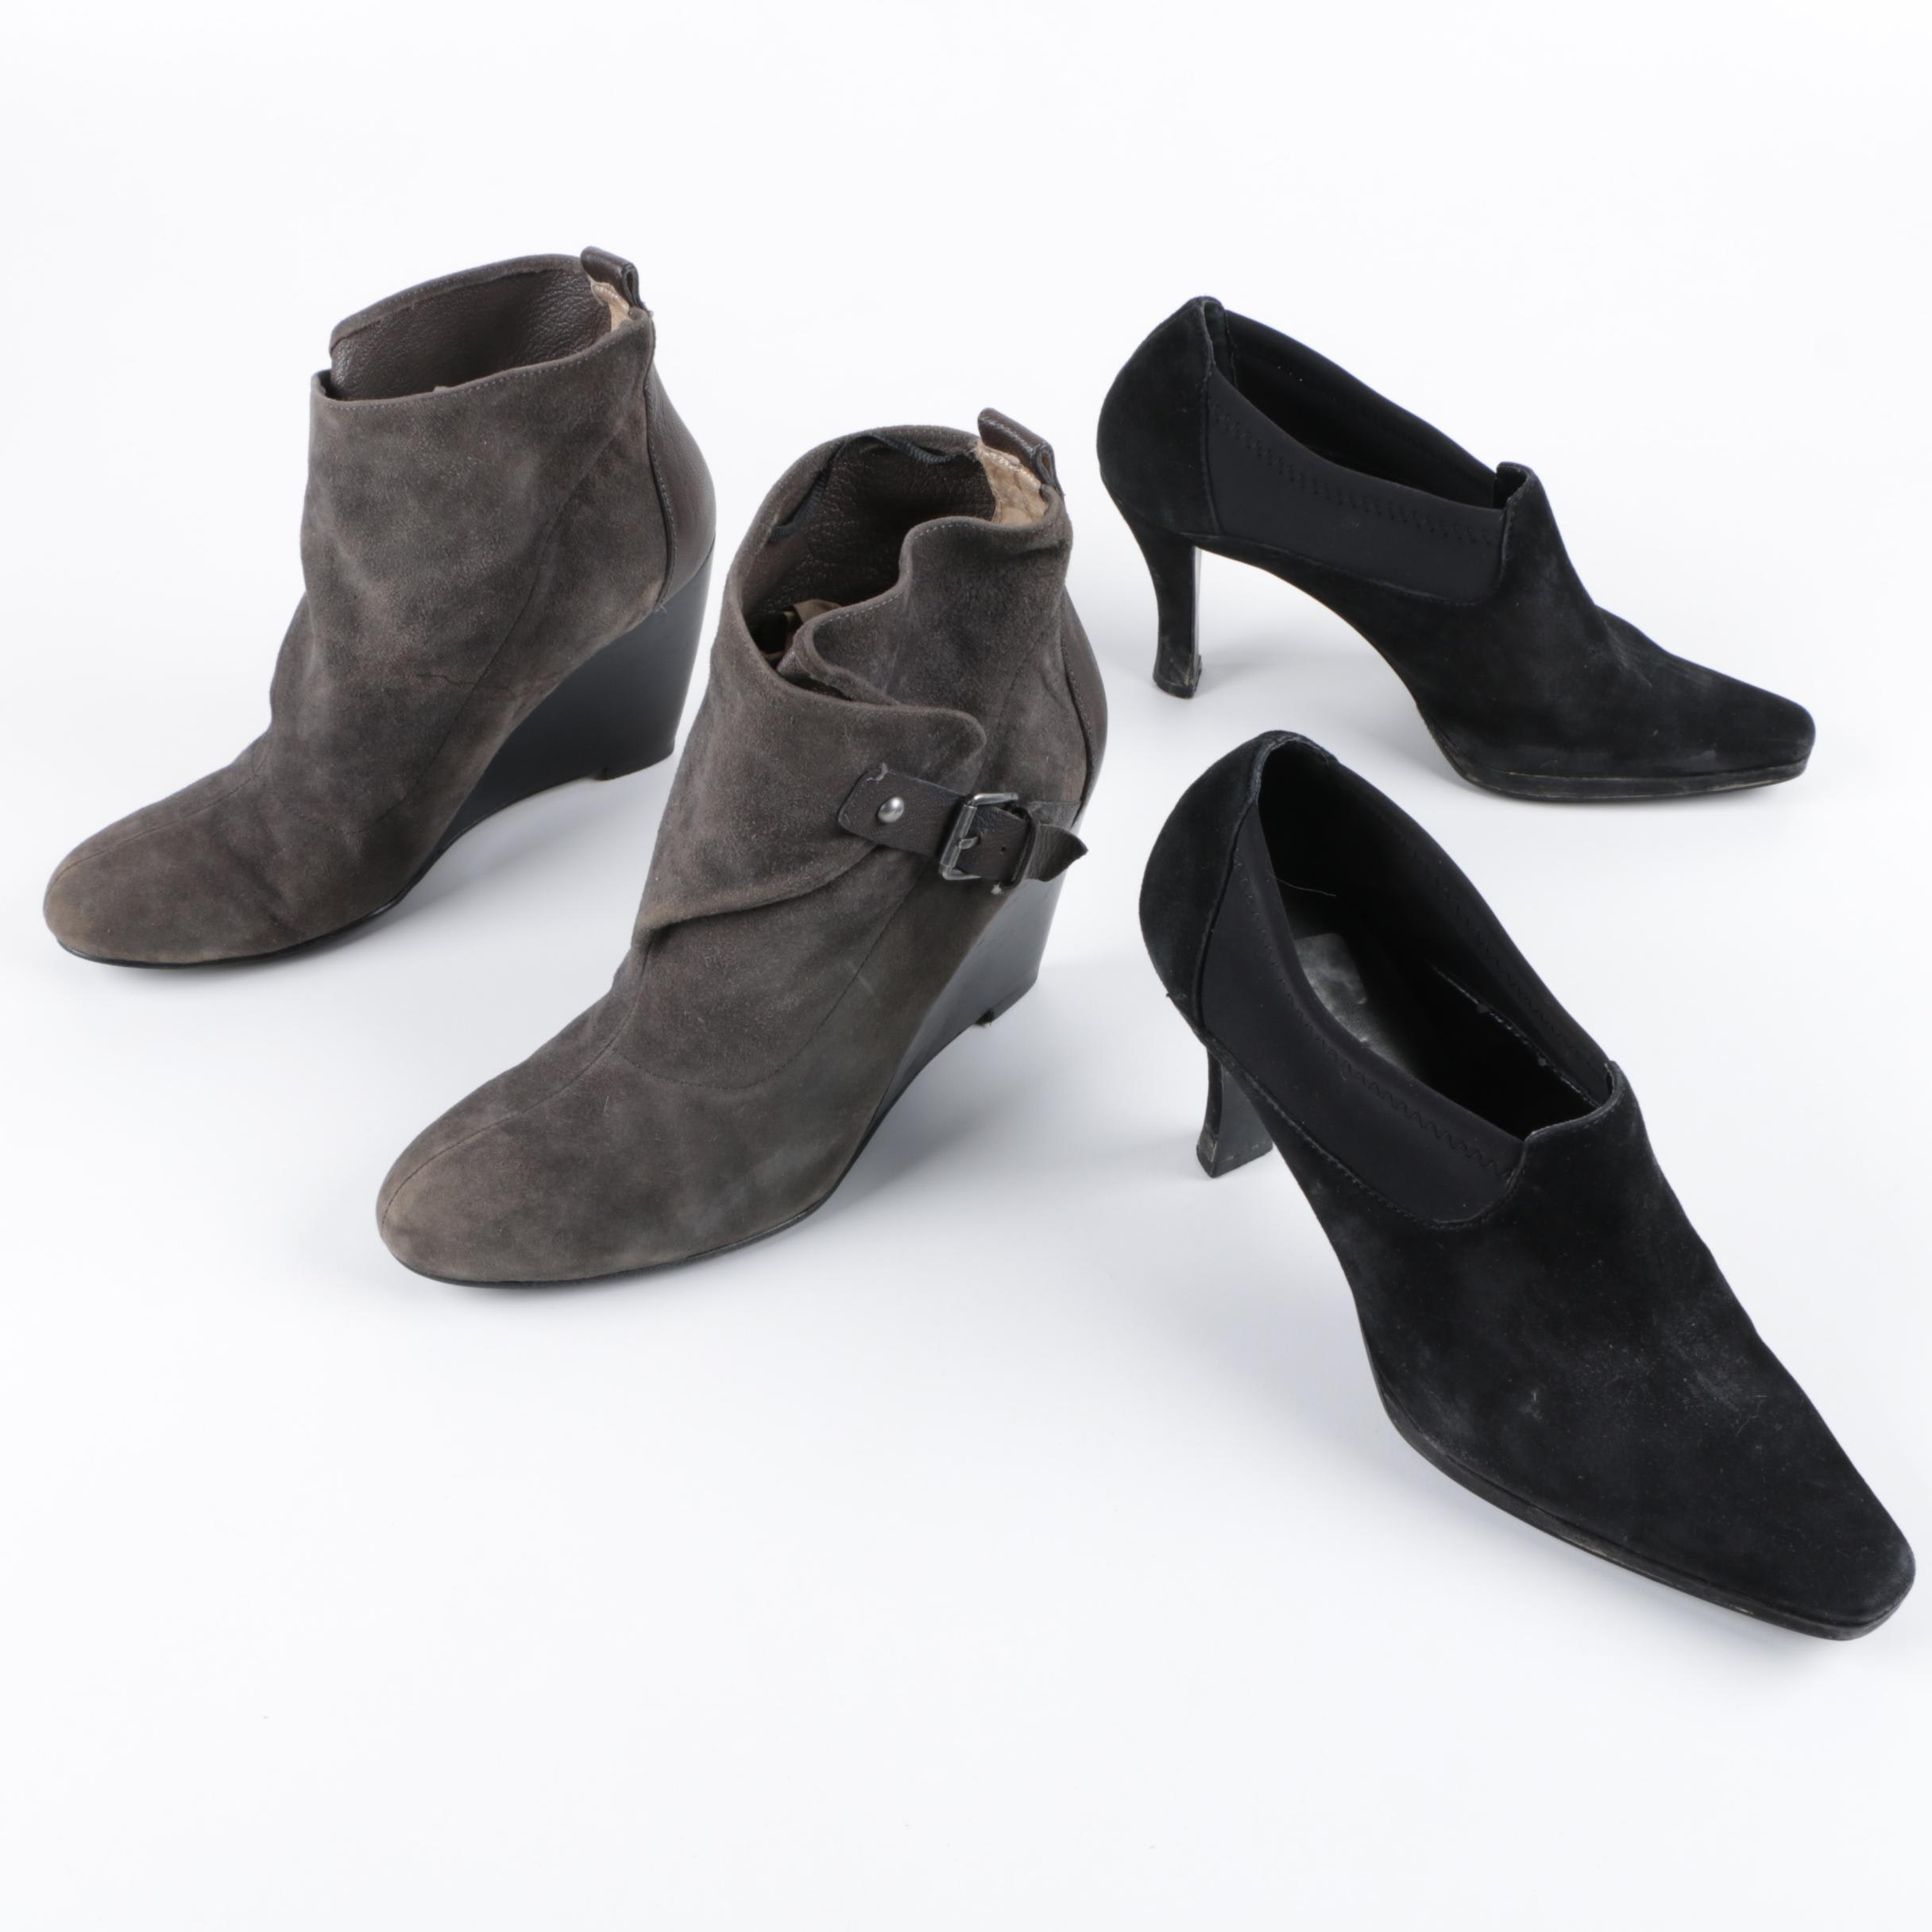 Nine West Grey Suede Booties and Moda Black Suede Heels